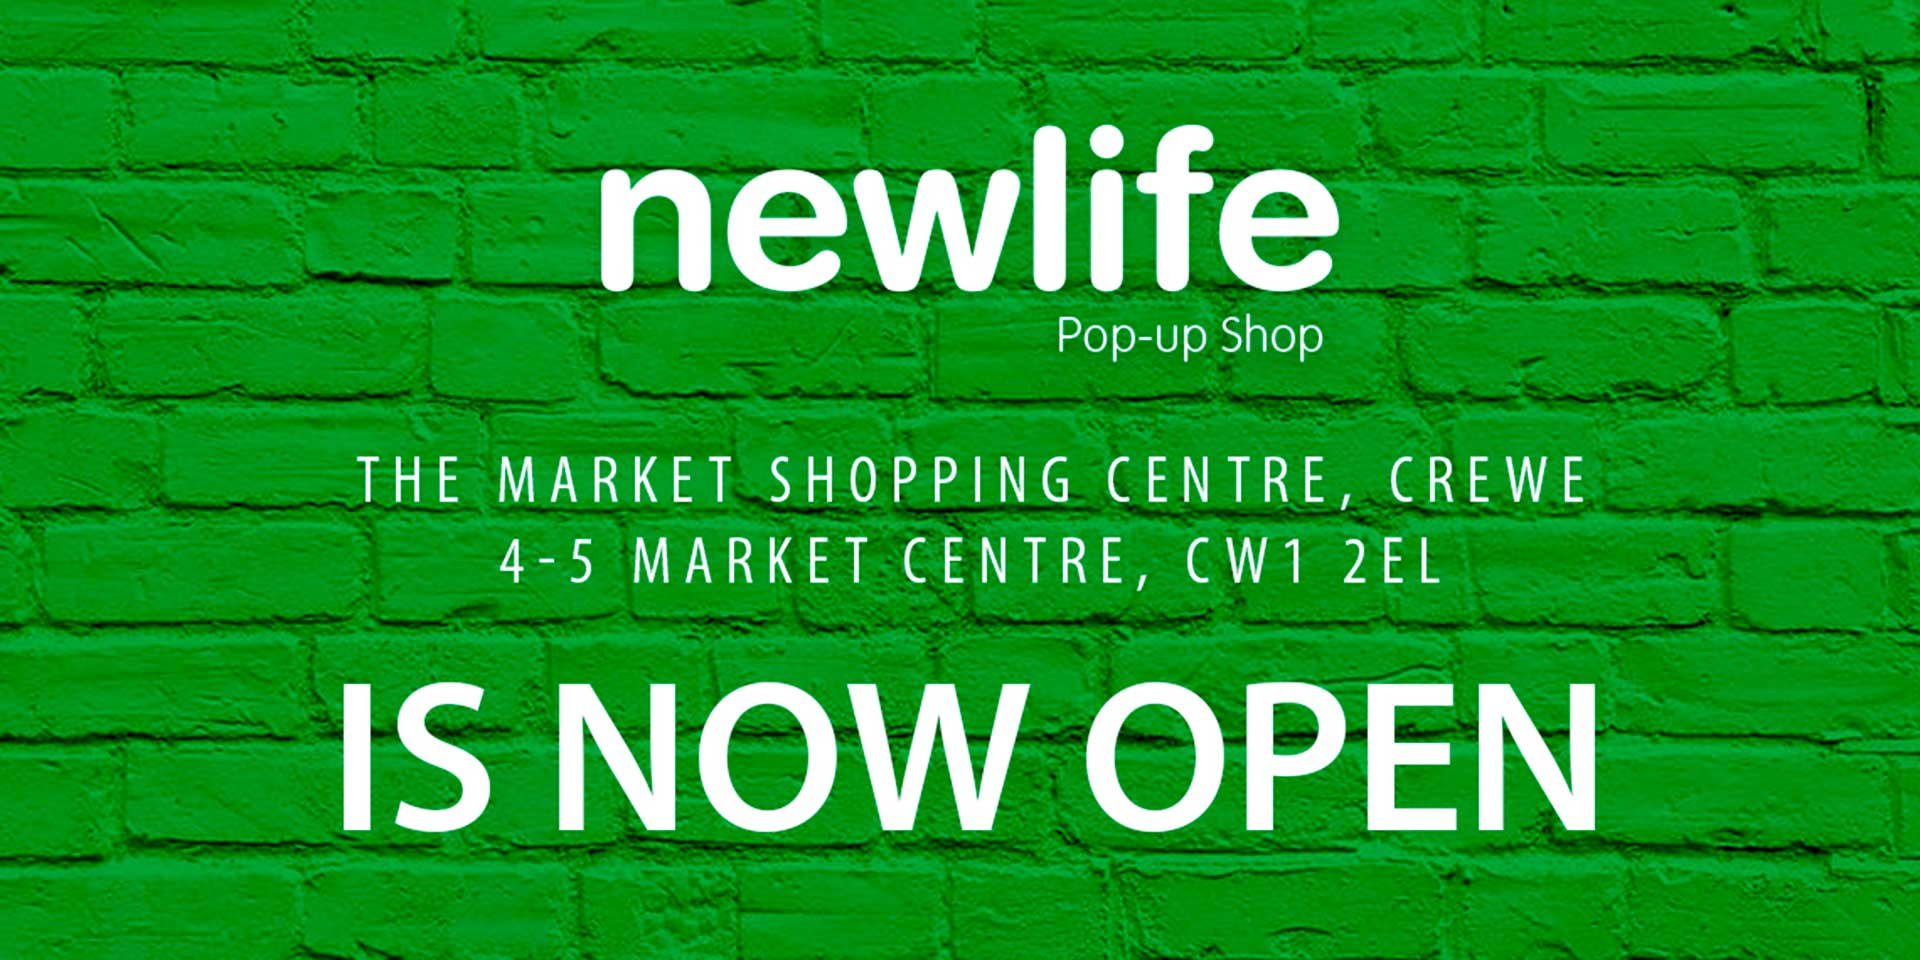 Newlife Pop-up Shop Redcar